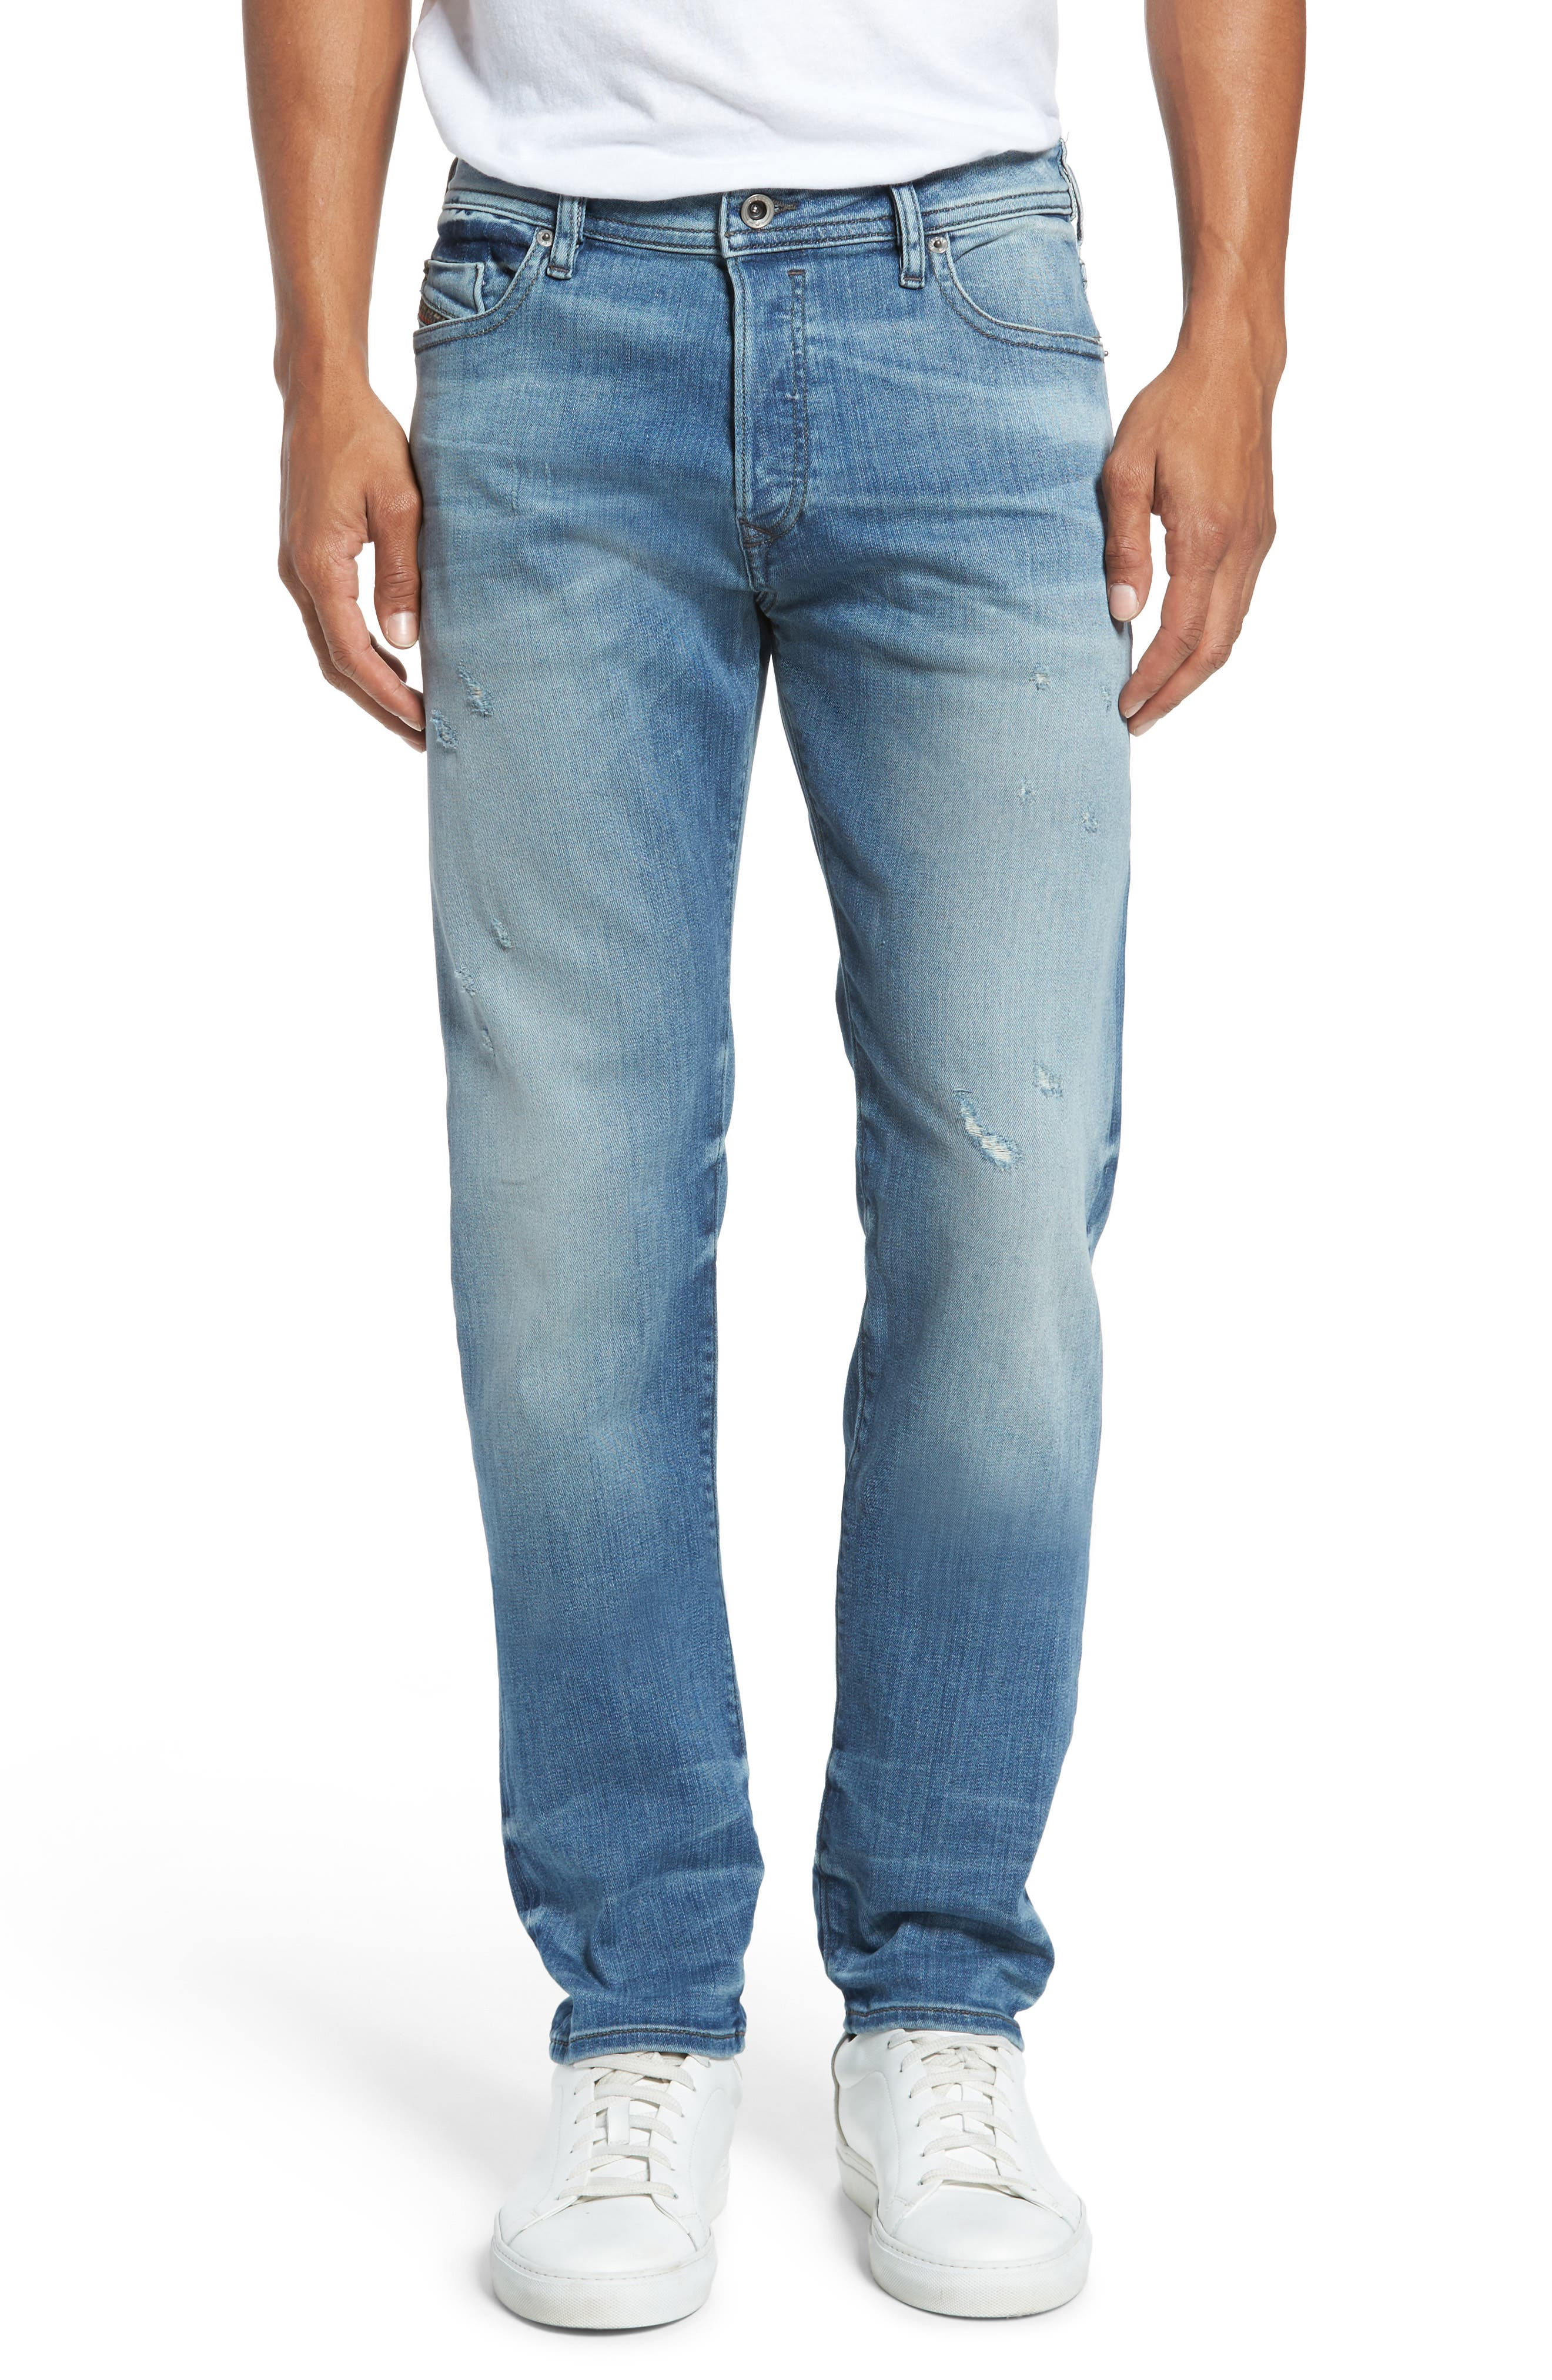 'Buster' Slim Straight Fit Jeans,                             Alternate thumbnail 2, color,                             400